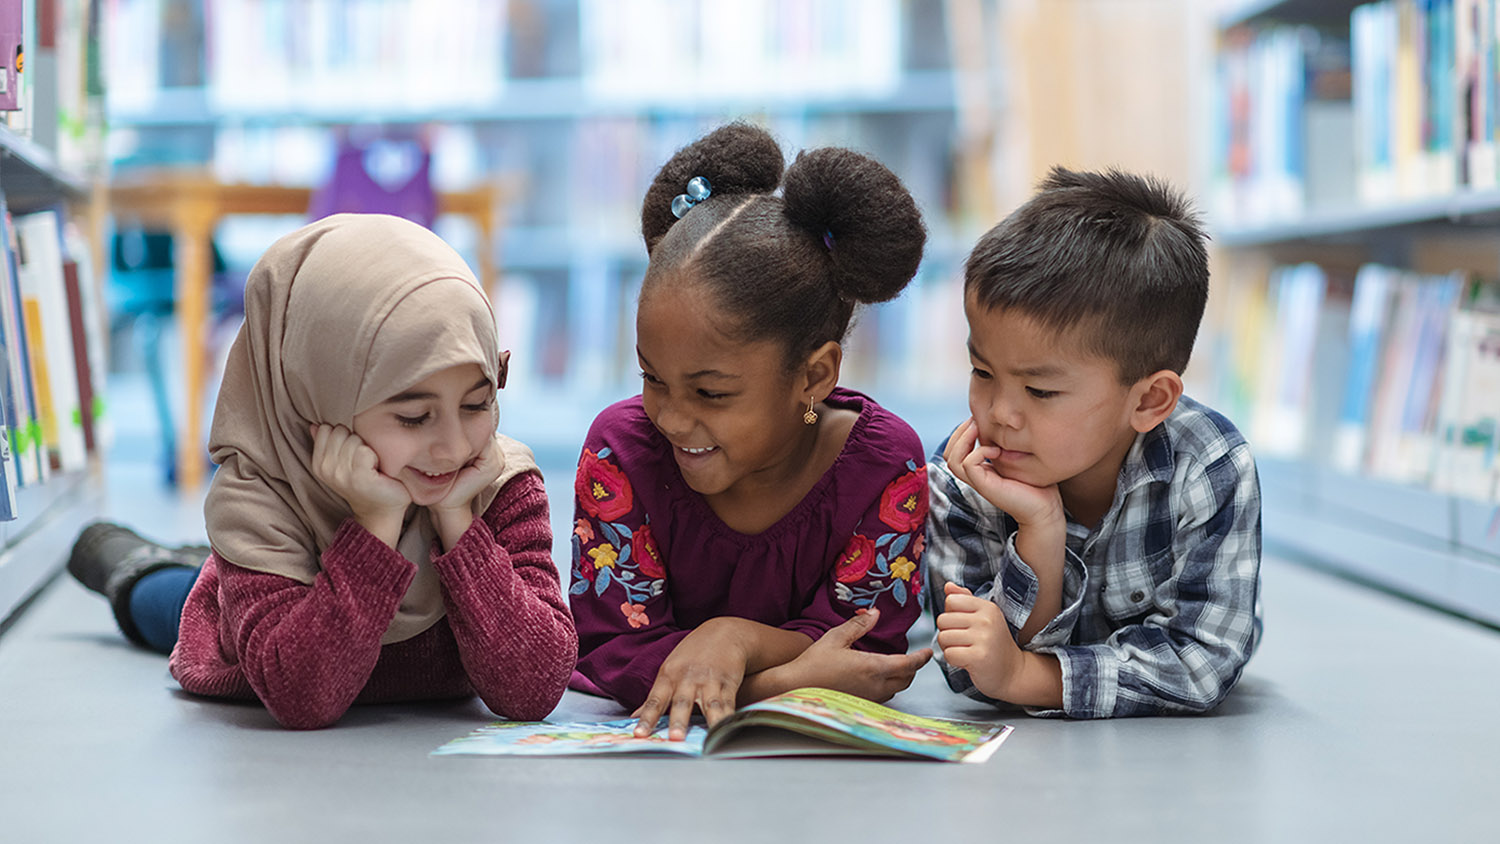 Three children lay on the floor to read together